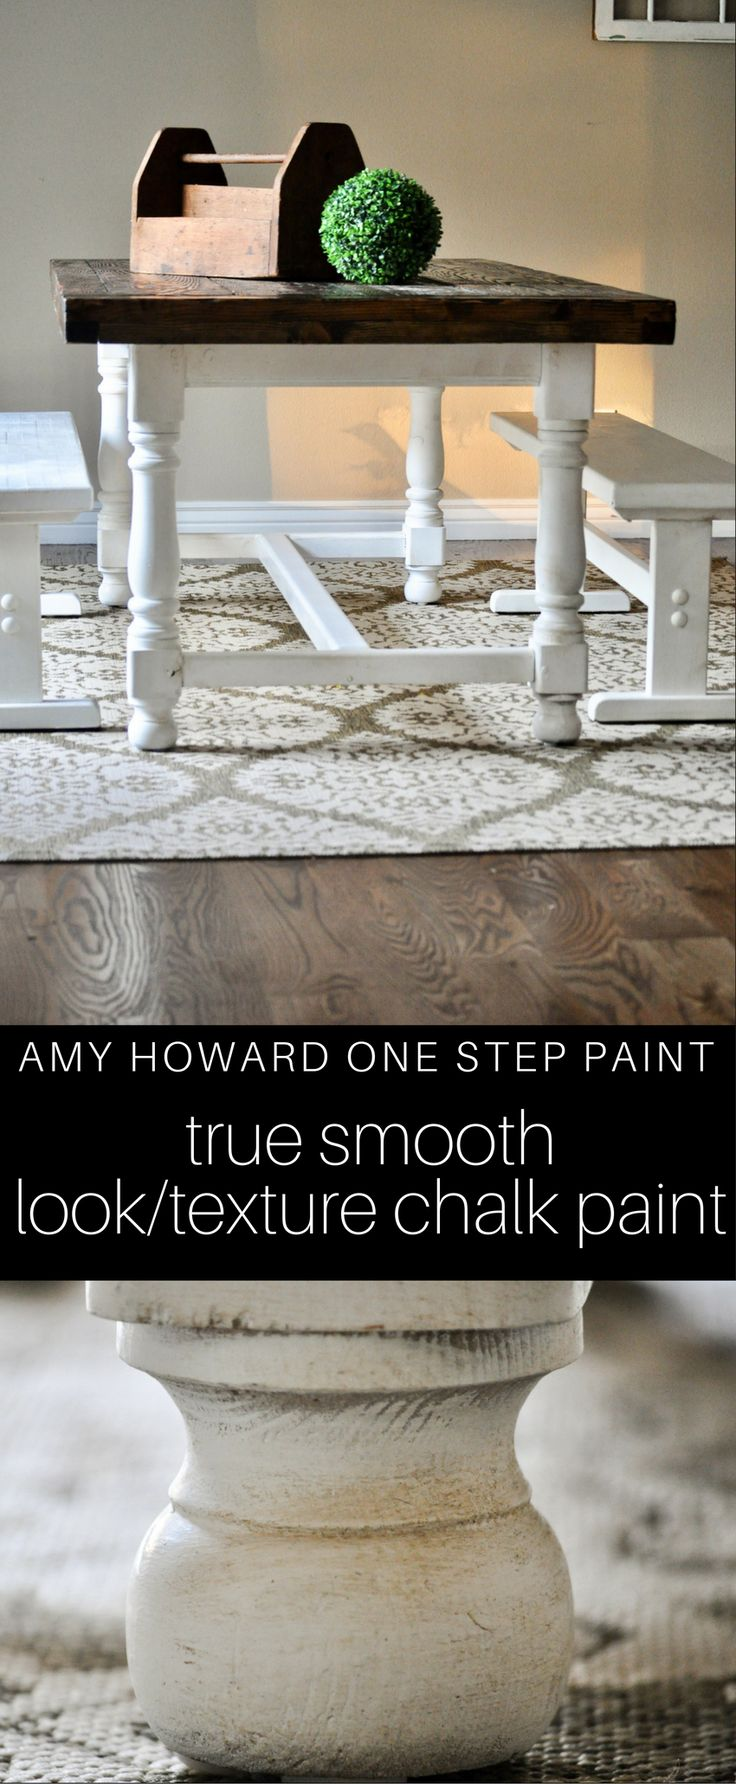 This was our first time using Amy Howard One Step Paint. It goes on smoothly (no brush strokes). It doesn't have a weird texture to it either like most chalk paints. This is absolutely our go to for furniture painting now. Purchase at Ace Hardware or online.